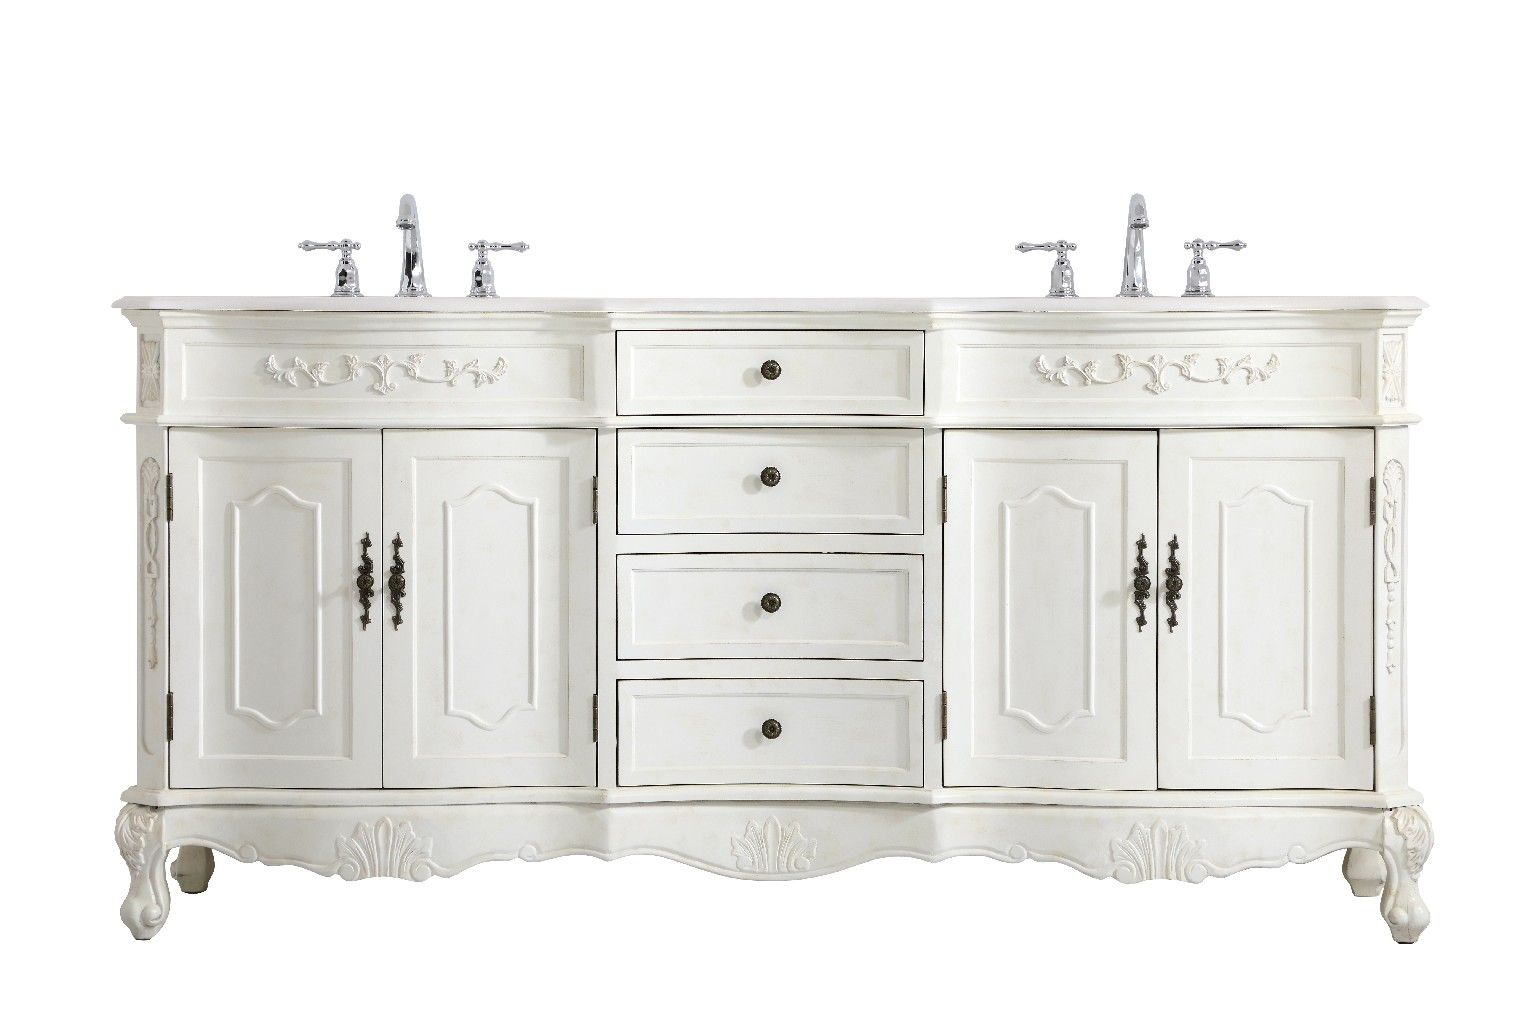 72 Inch Double Bathroom Vanity In Antique White Elegant Lighting Vf10172daw